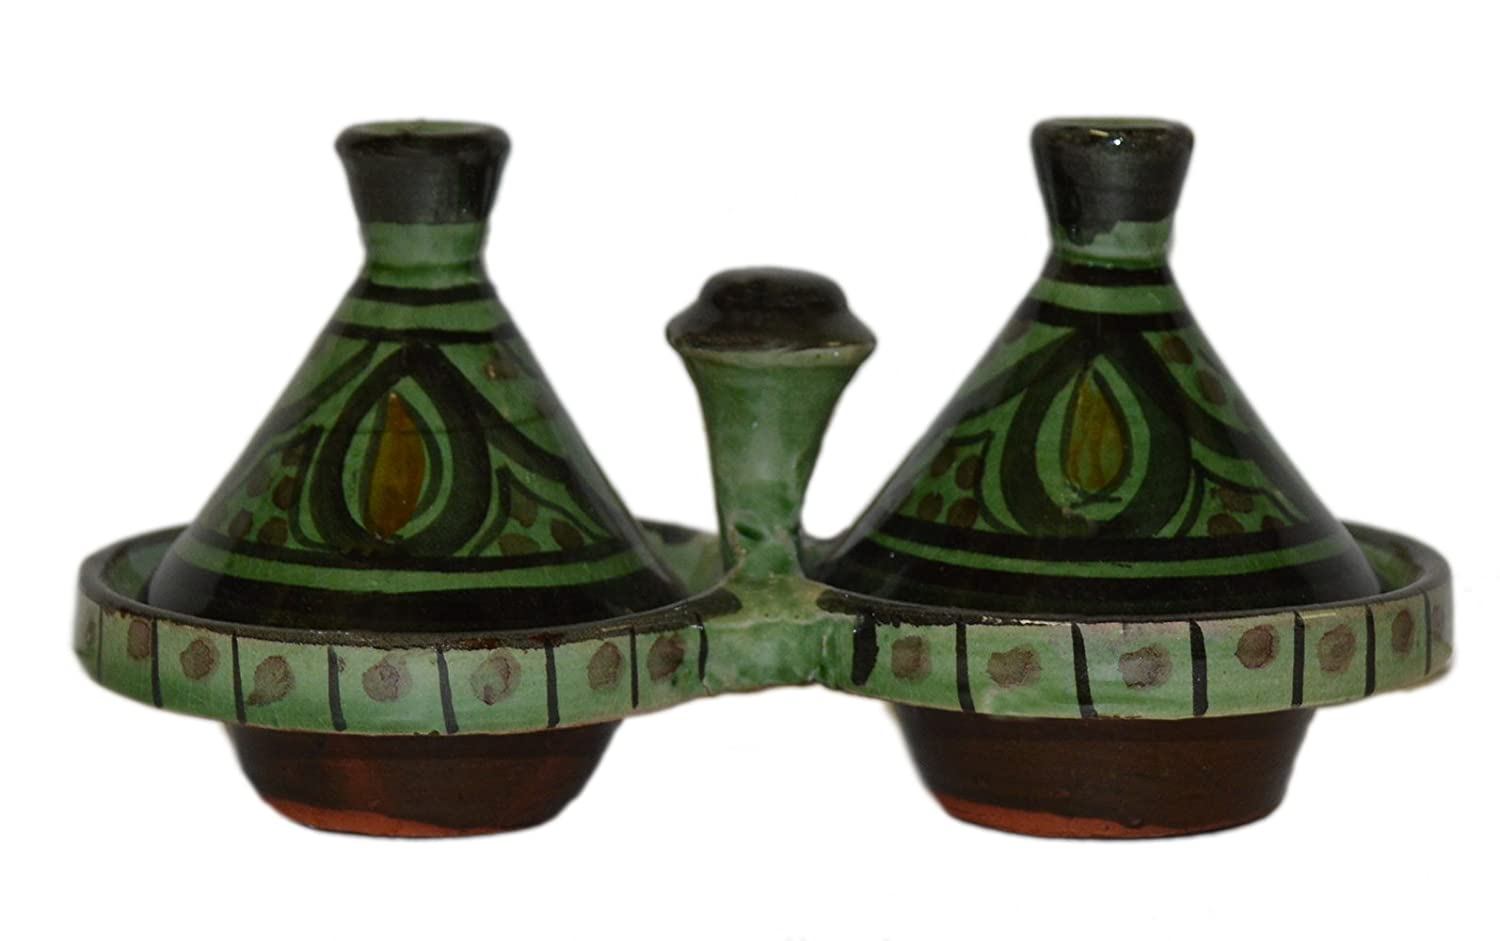 Moroccan Handmade Tagine Double Spice Holder seasoning Container Treasures of Morocco